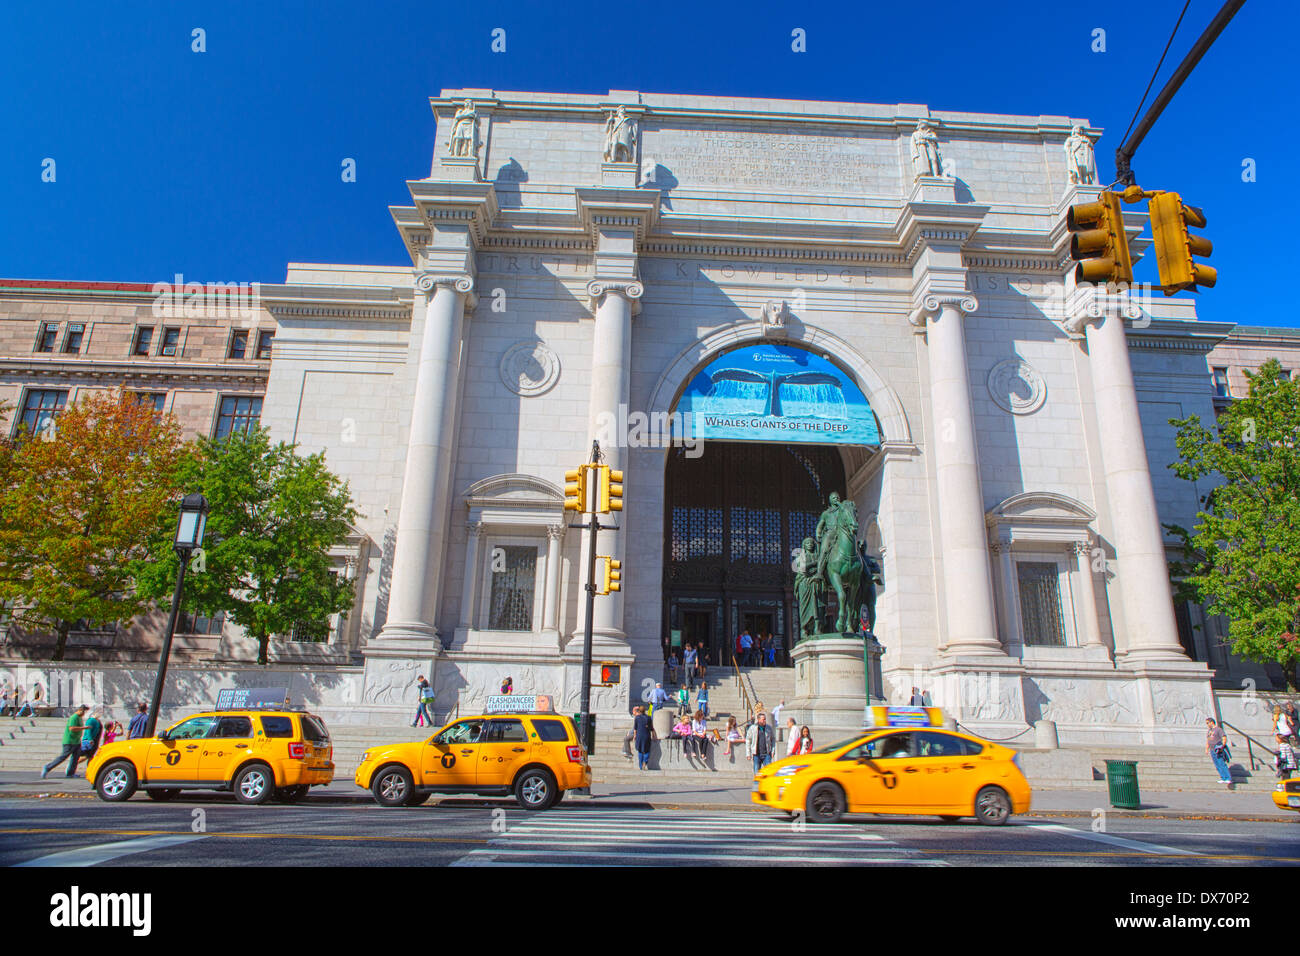 New York city taxis in front of the Museum of Natural History, Central Park West, New York, USA - Stock Image